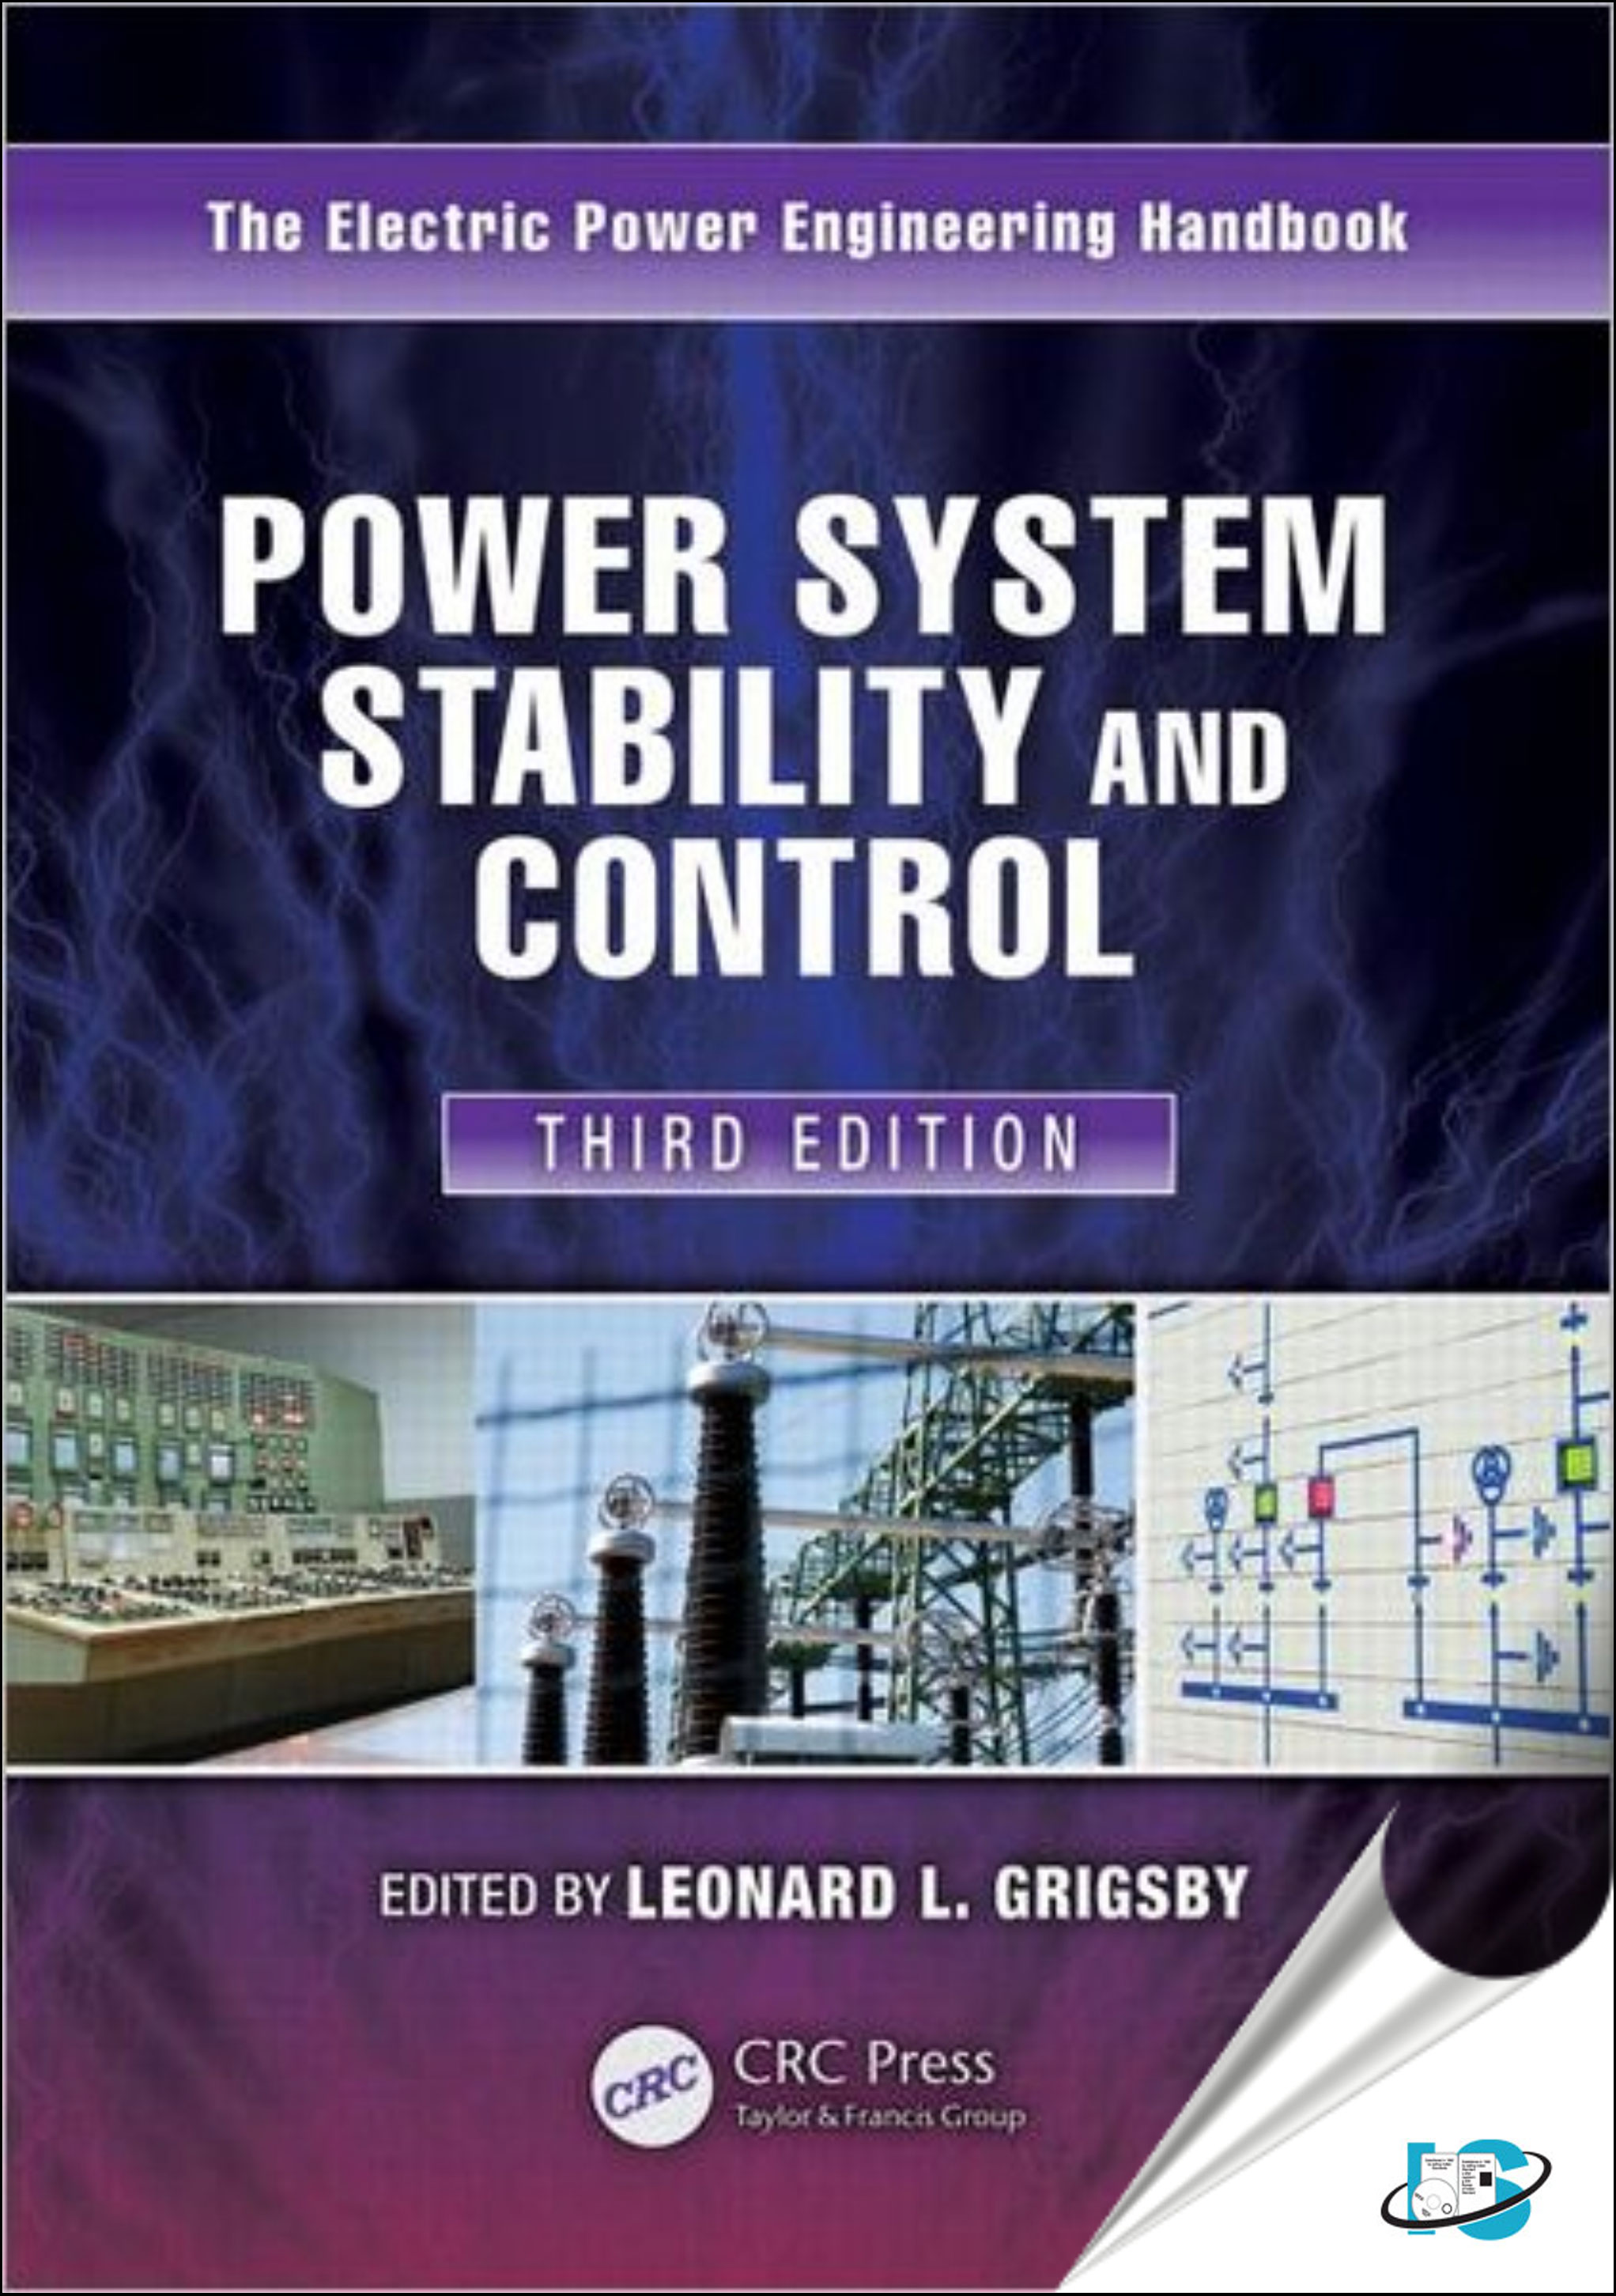 power system stability Today's electric power systems are continually increasing in complexity due to interconnection growth, the use of new technologies, and financial and regulatory constraints sponsored by the electric power research institute, this expert engineering guide helps you deal effectively with stability and control problems.